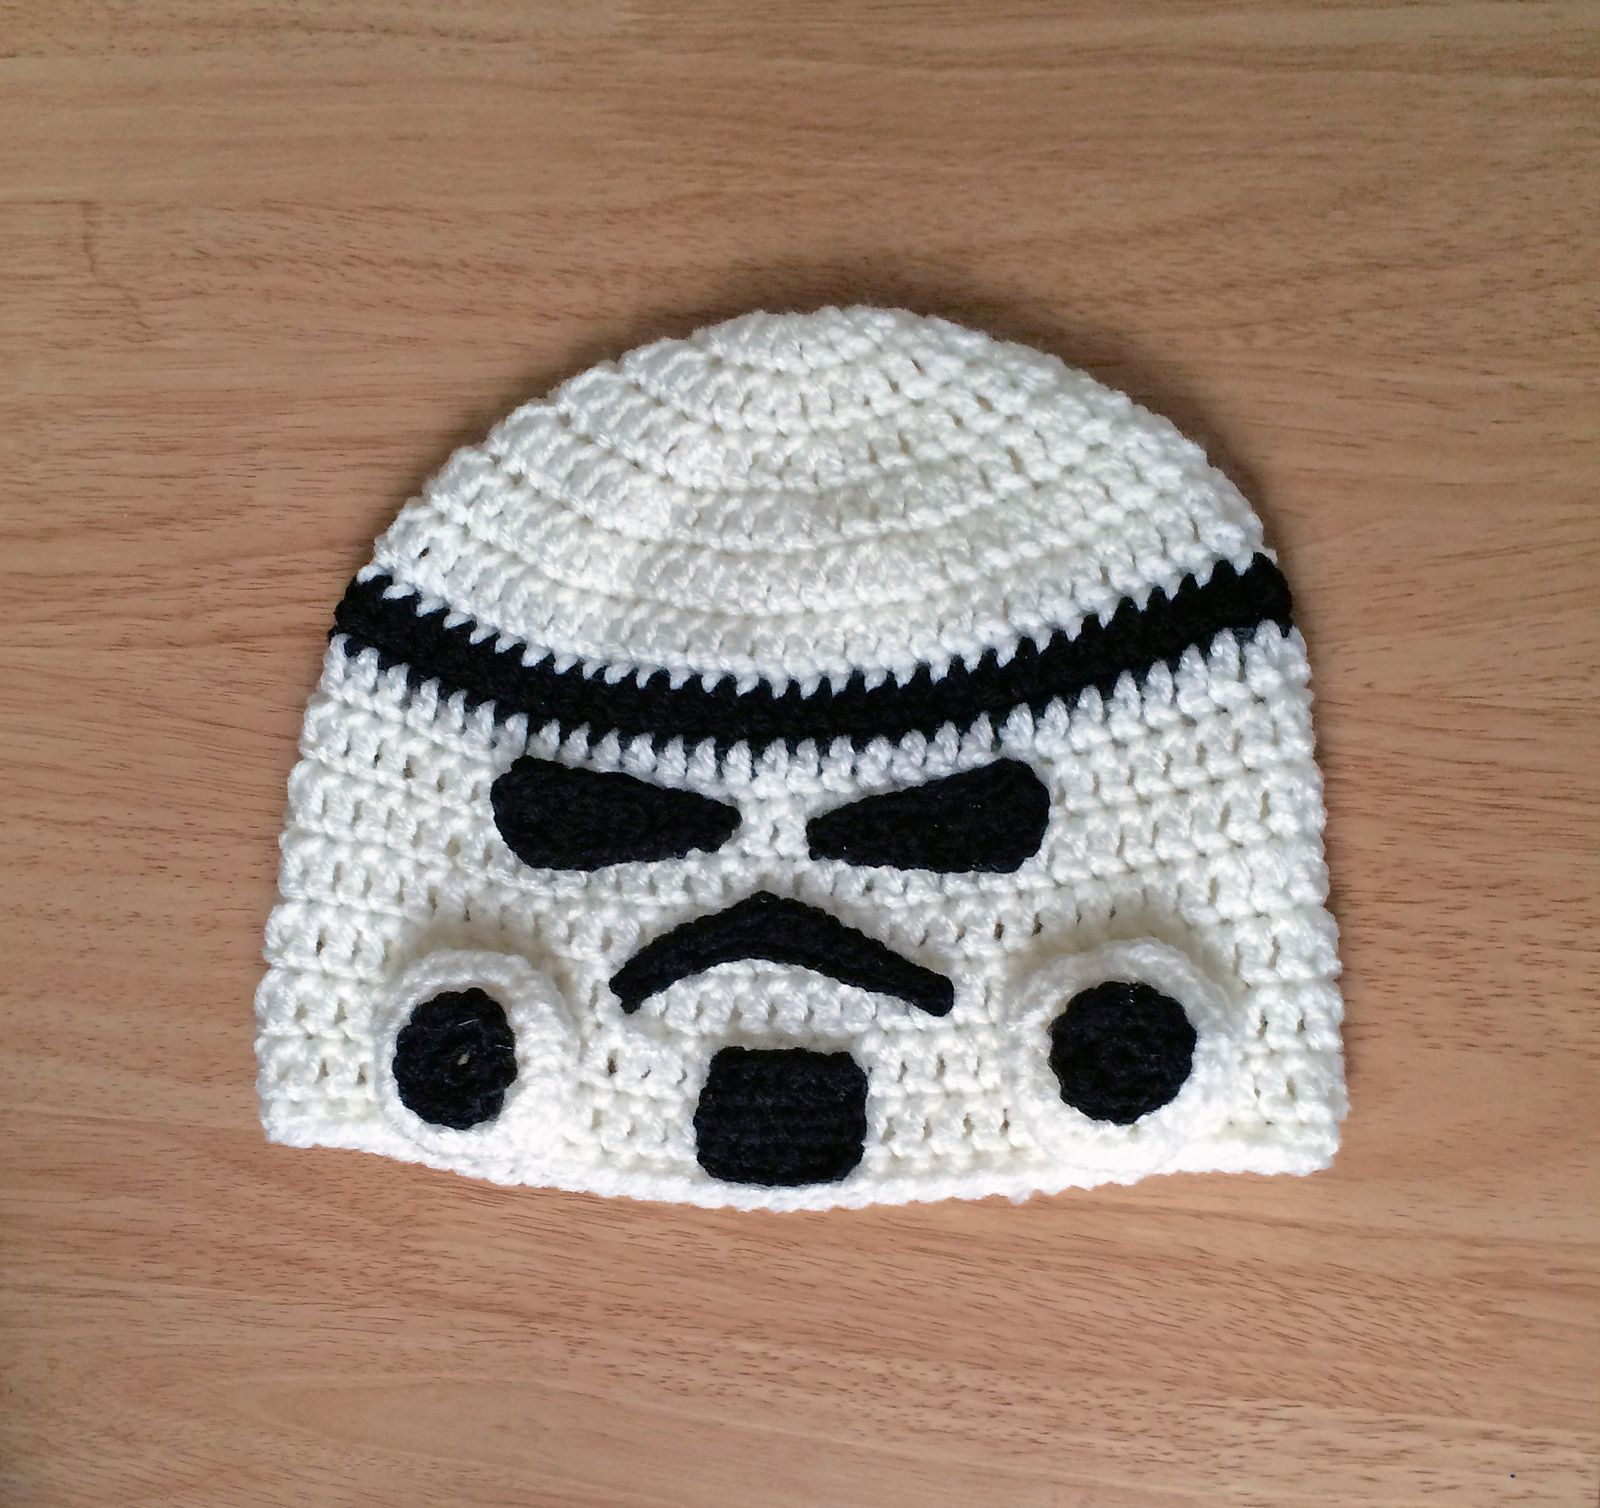 Ravelry star wars storm trooper beanie by megan denham patterns explore trooper hat starwars and more bankloansurffo Choice Image